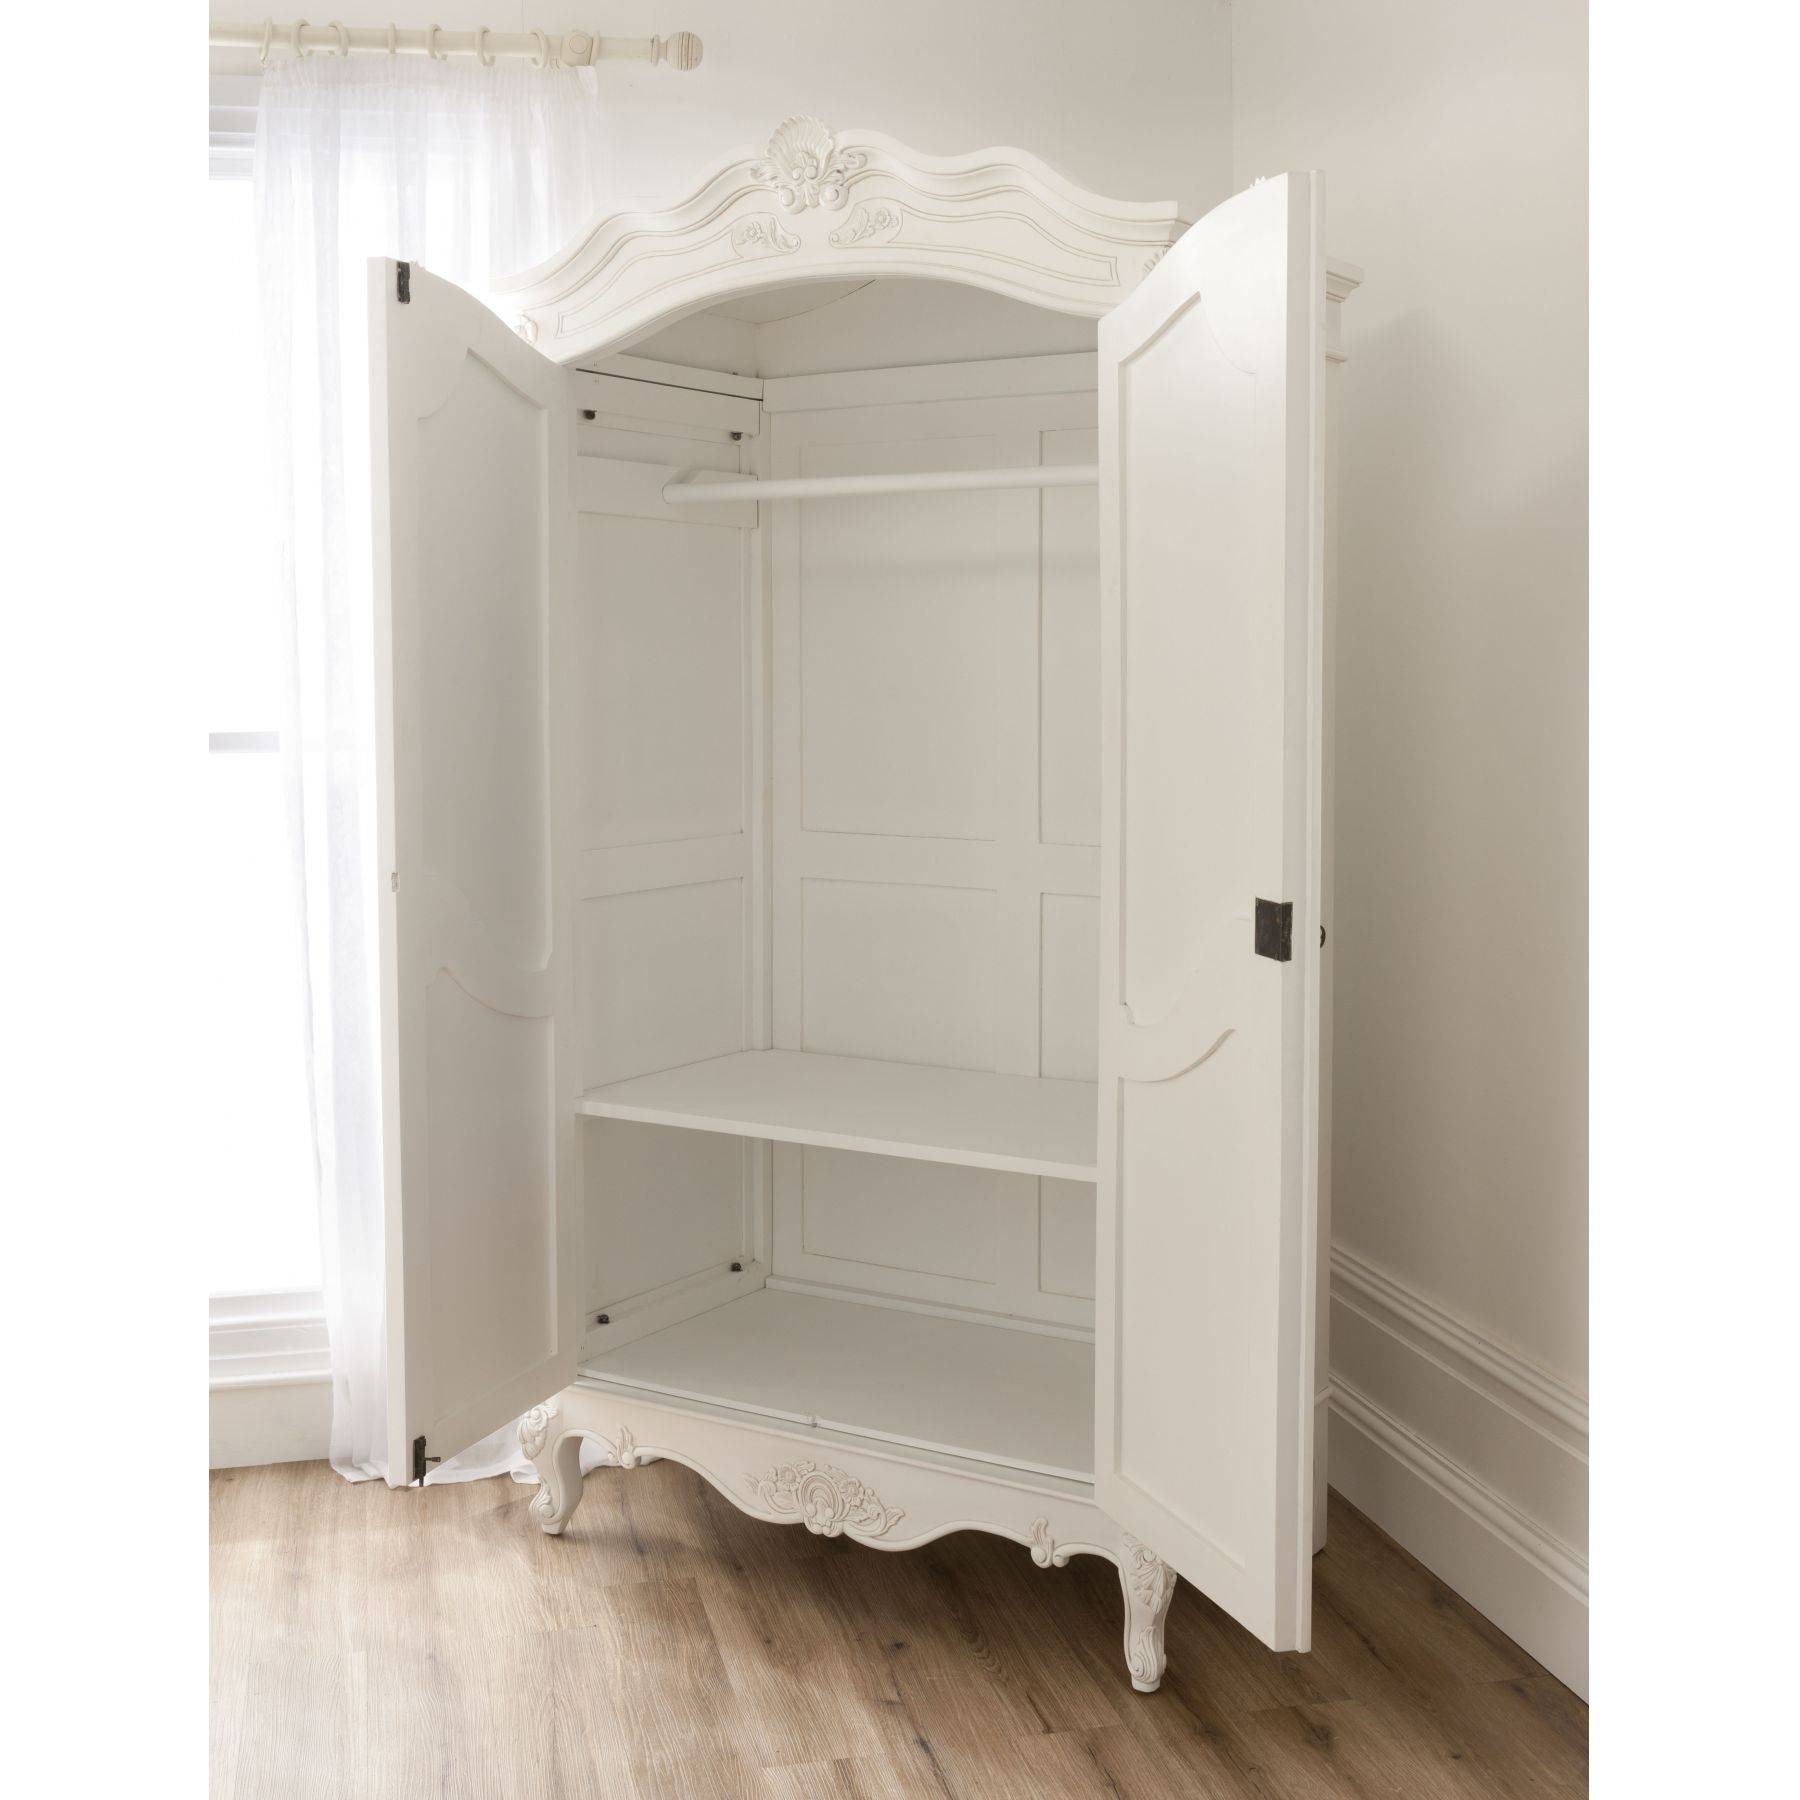 Baroque Antique French Wardrobe Is Available Online From intended for French White Wardrobes (Image 2 of 15)